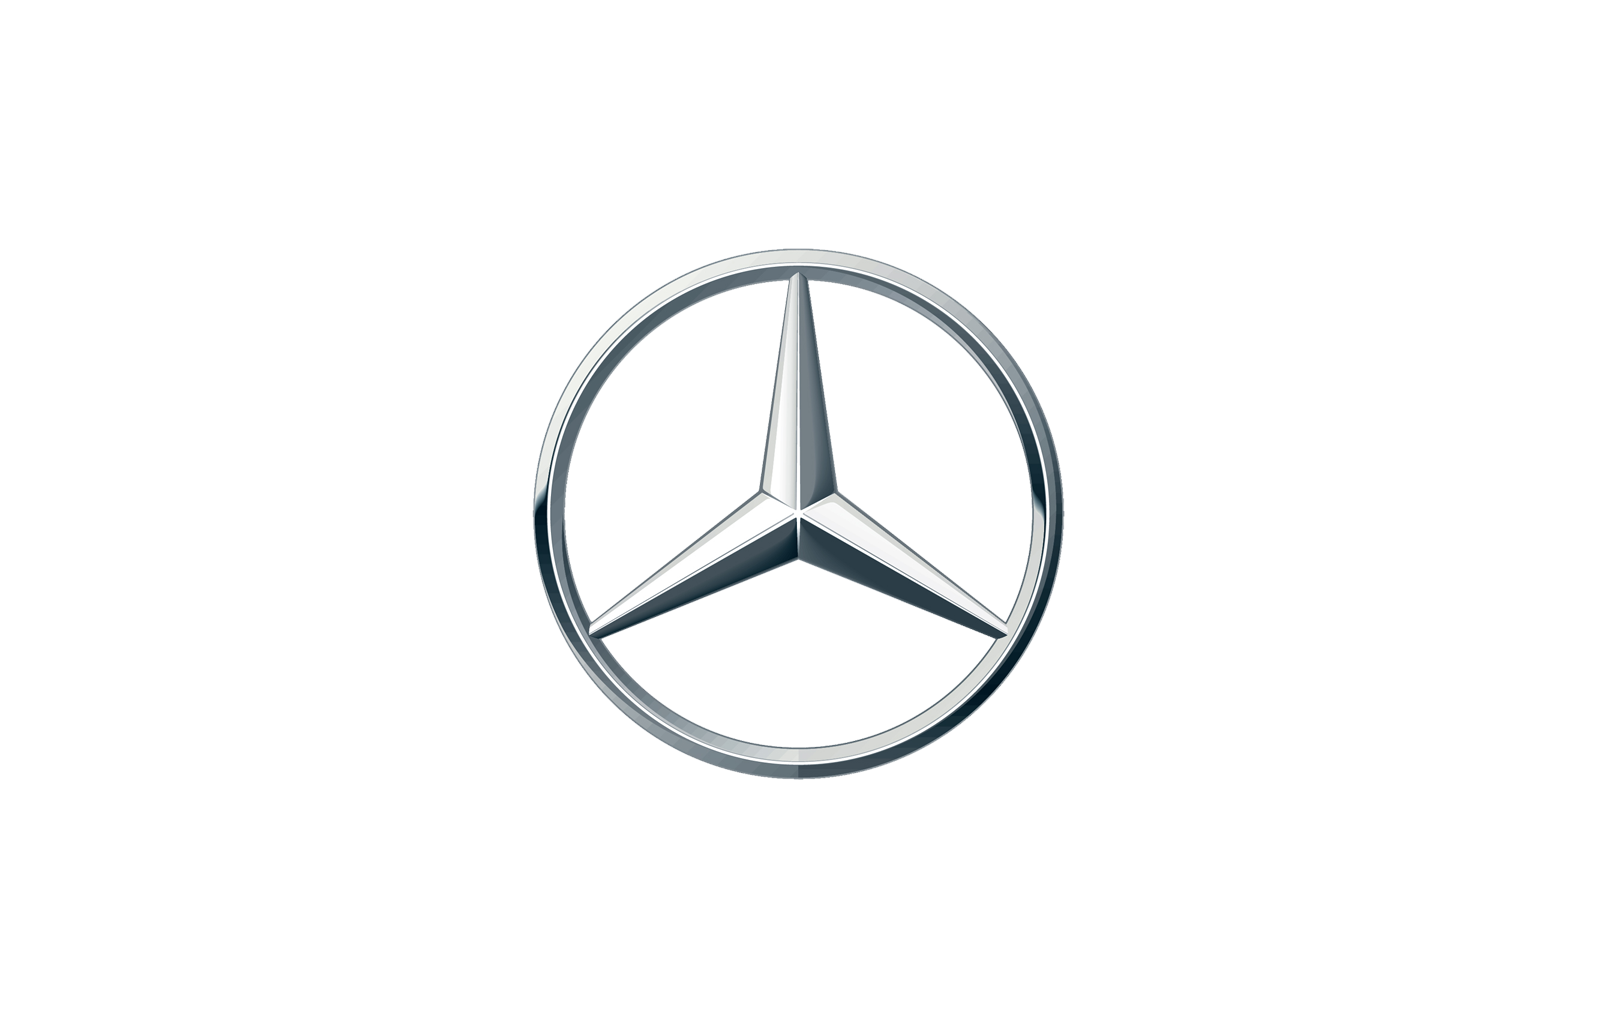 Image for Mercedes Benz Logo Vector Free Download | Projects to ...